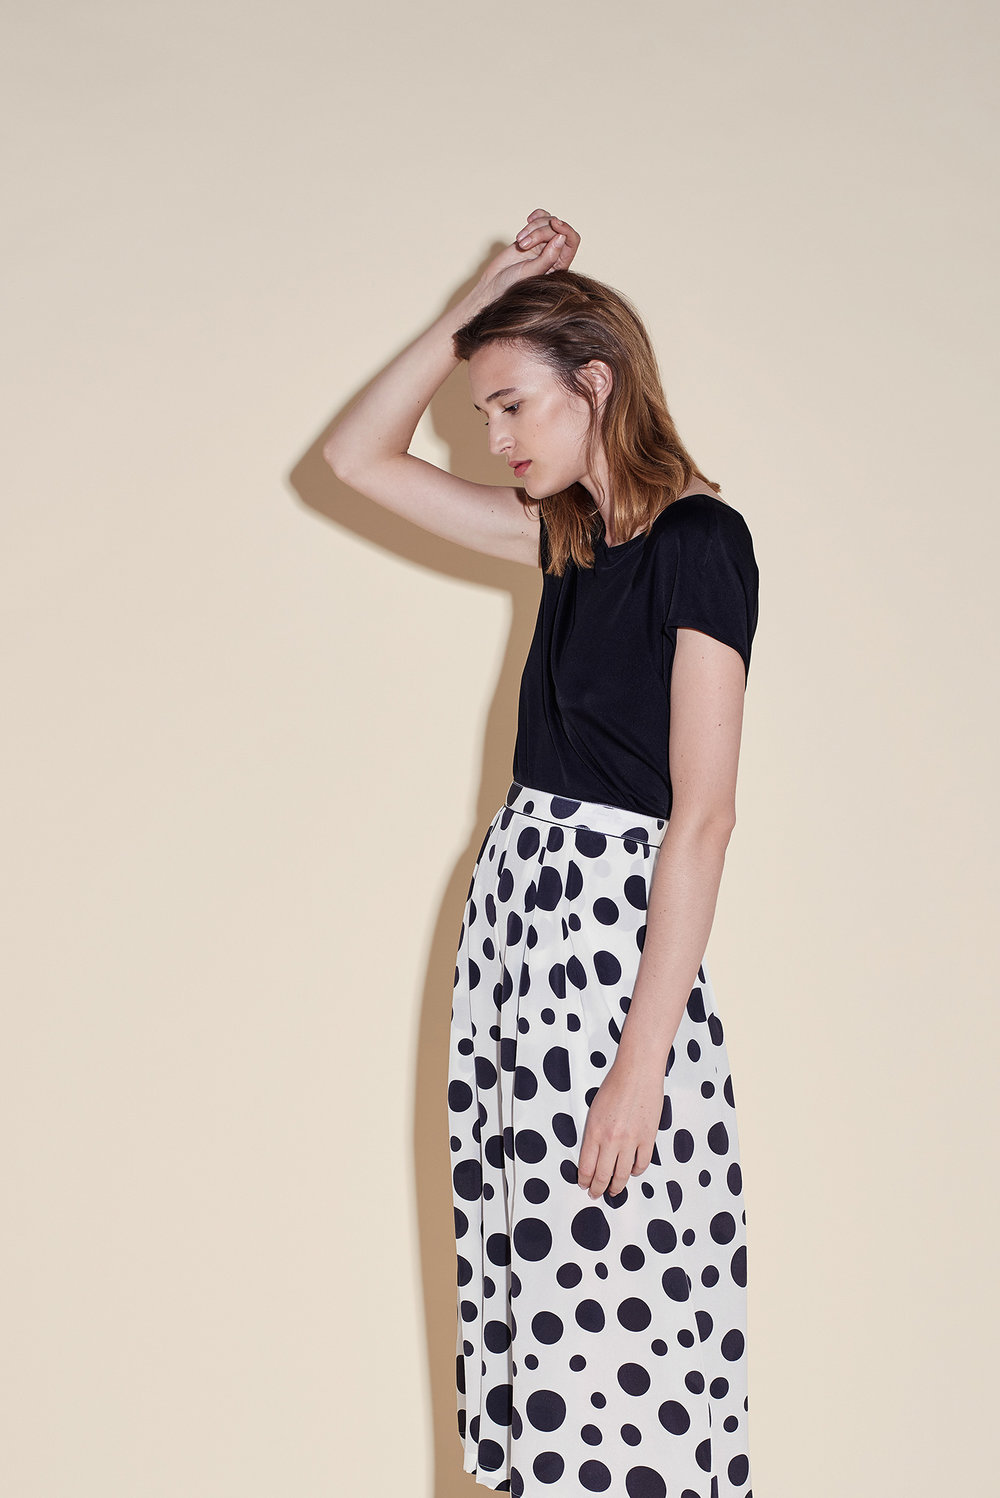 Culottes crepe silk polka dots black – short sleeves top silk jersey black